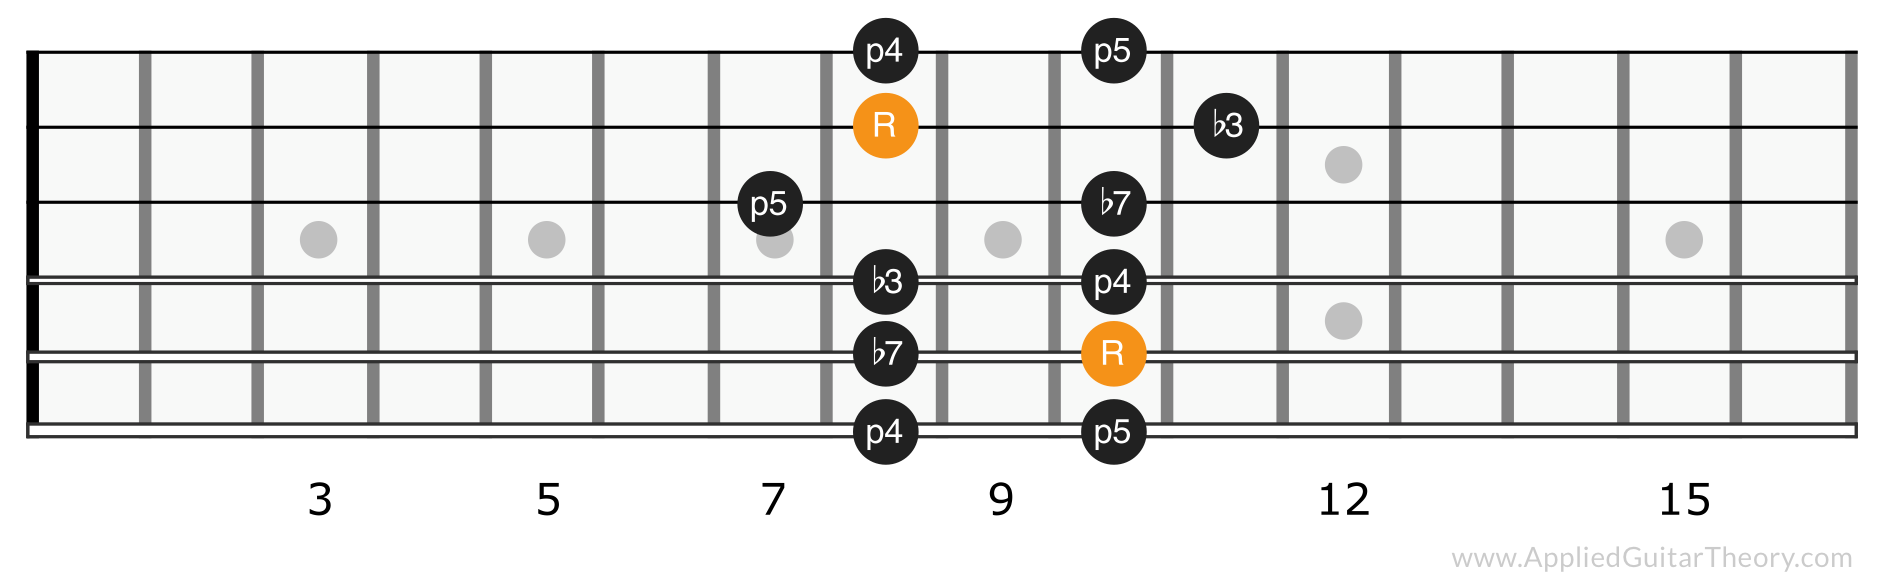 Minor pentatonic scale position 3